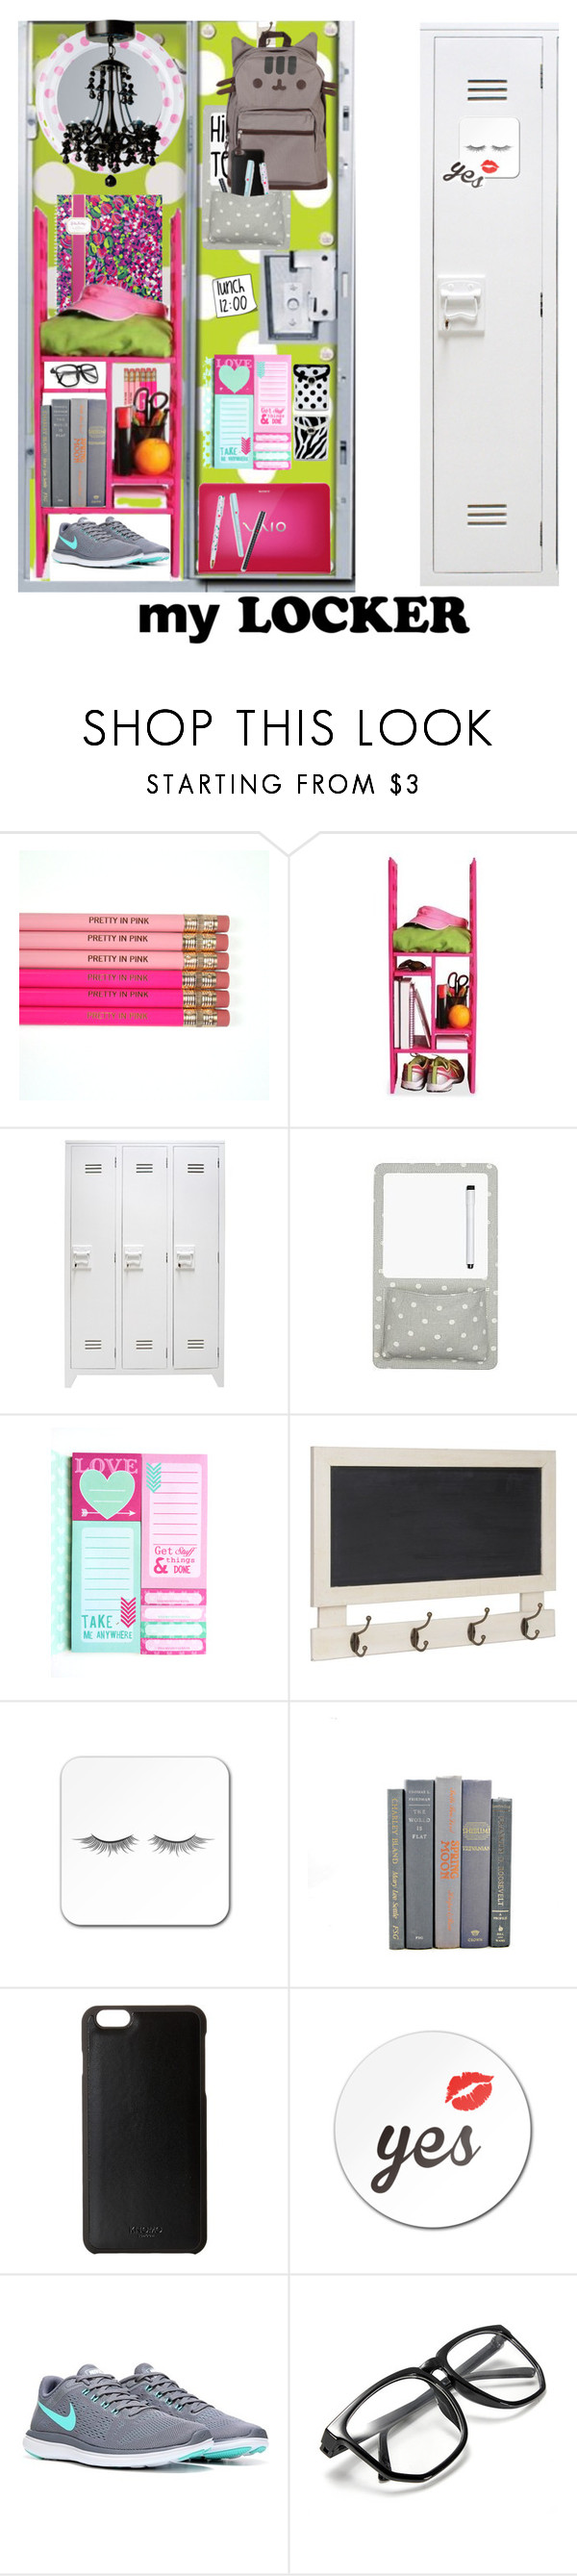 """MY LOCKER"" by beleev ❤ liked on Polyvore featuring interior, interiors, interior design, home, home decor, interior decorating, Pusheen, Knomo, BackToSchool and school"